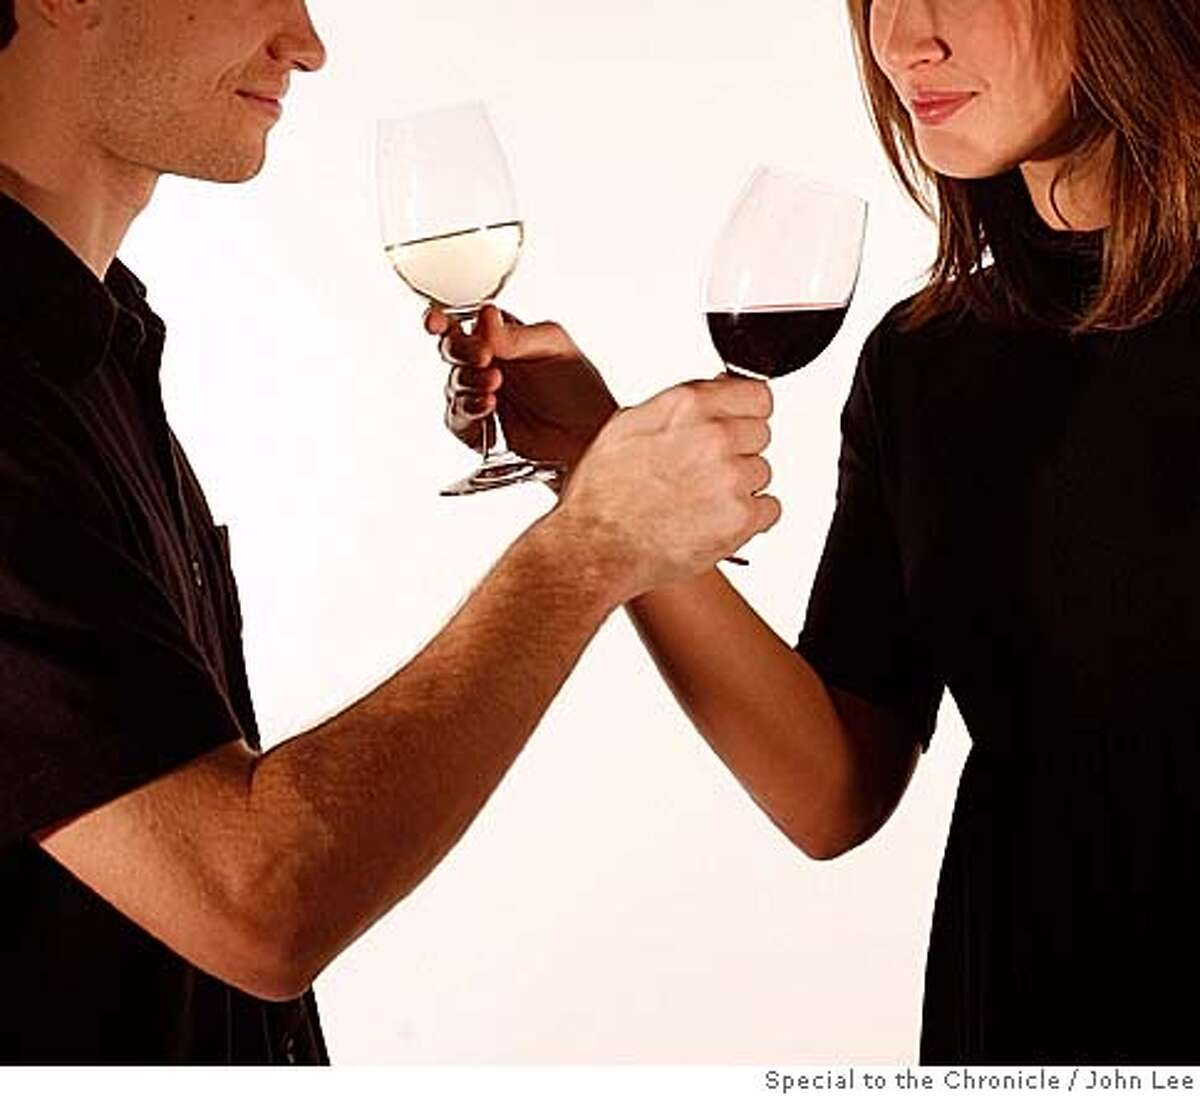 WINELOVERS_08_20_JOHNLEE.JPG For story about couples trying to get the other to drink either red or white wines. By JOHN LEE/SPECIAL TO THE CHRONICLE Ran on: 02-03-2008